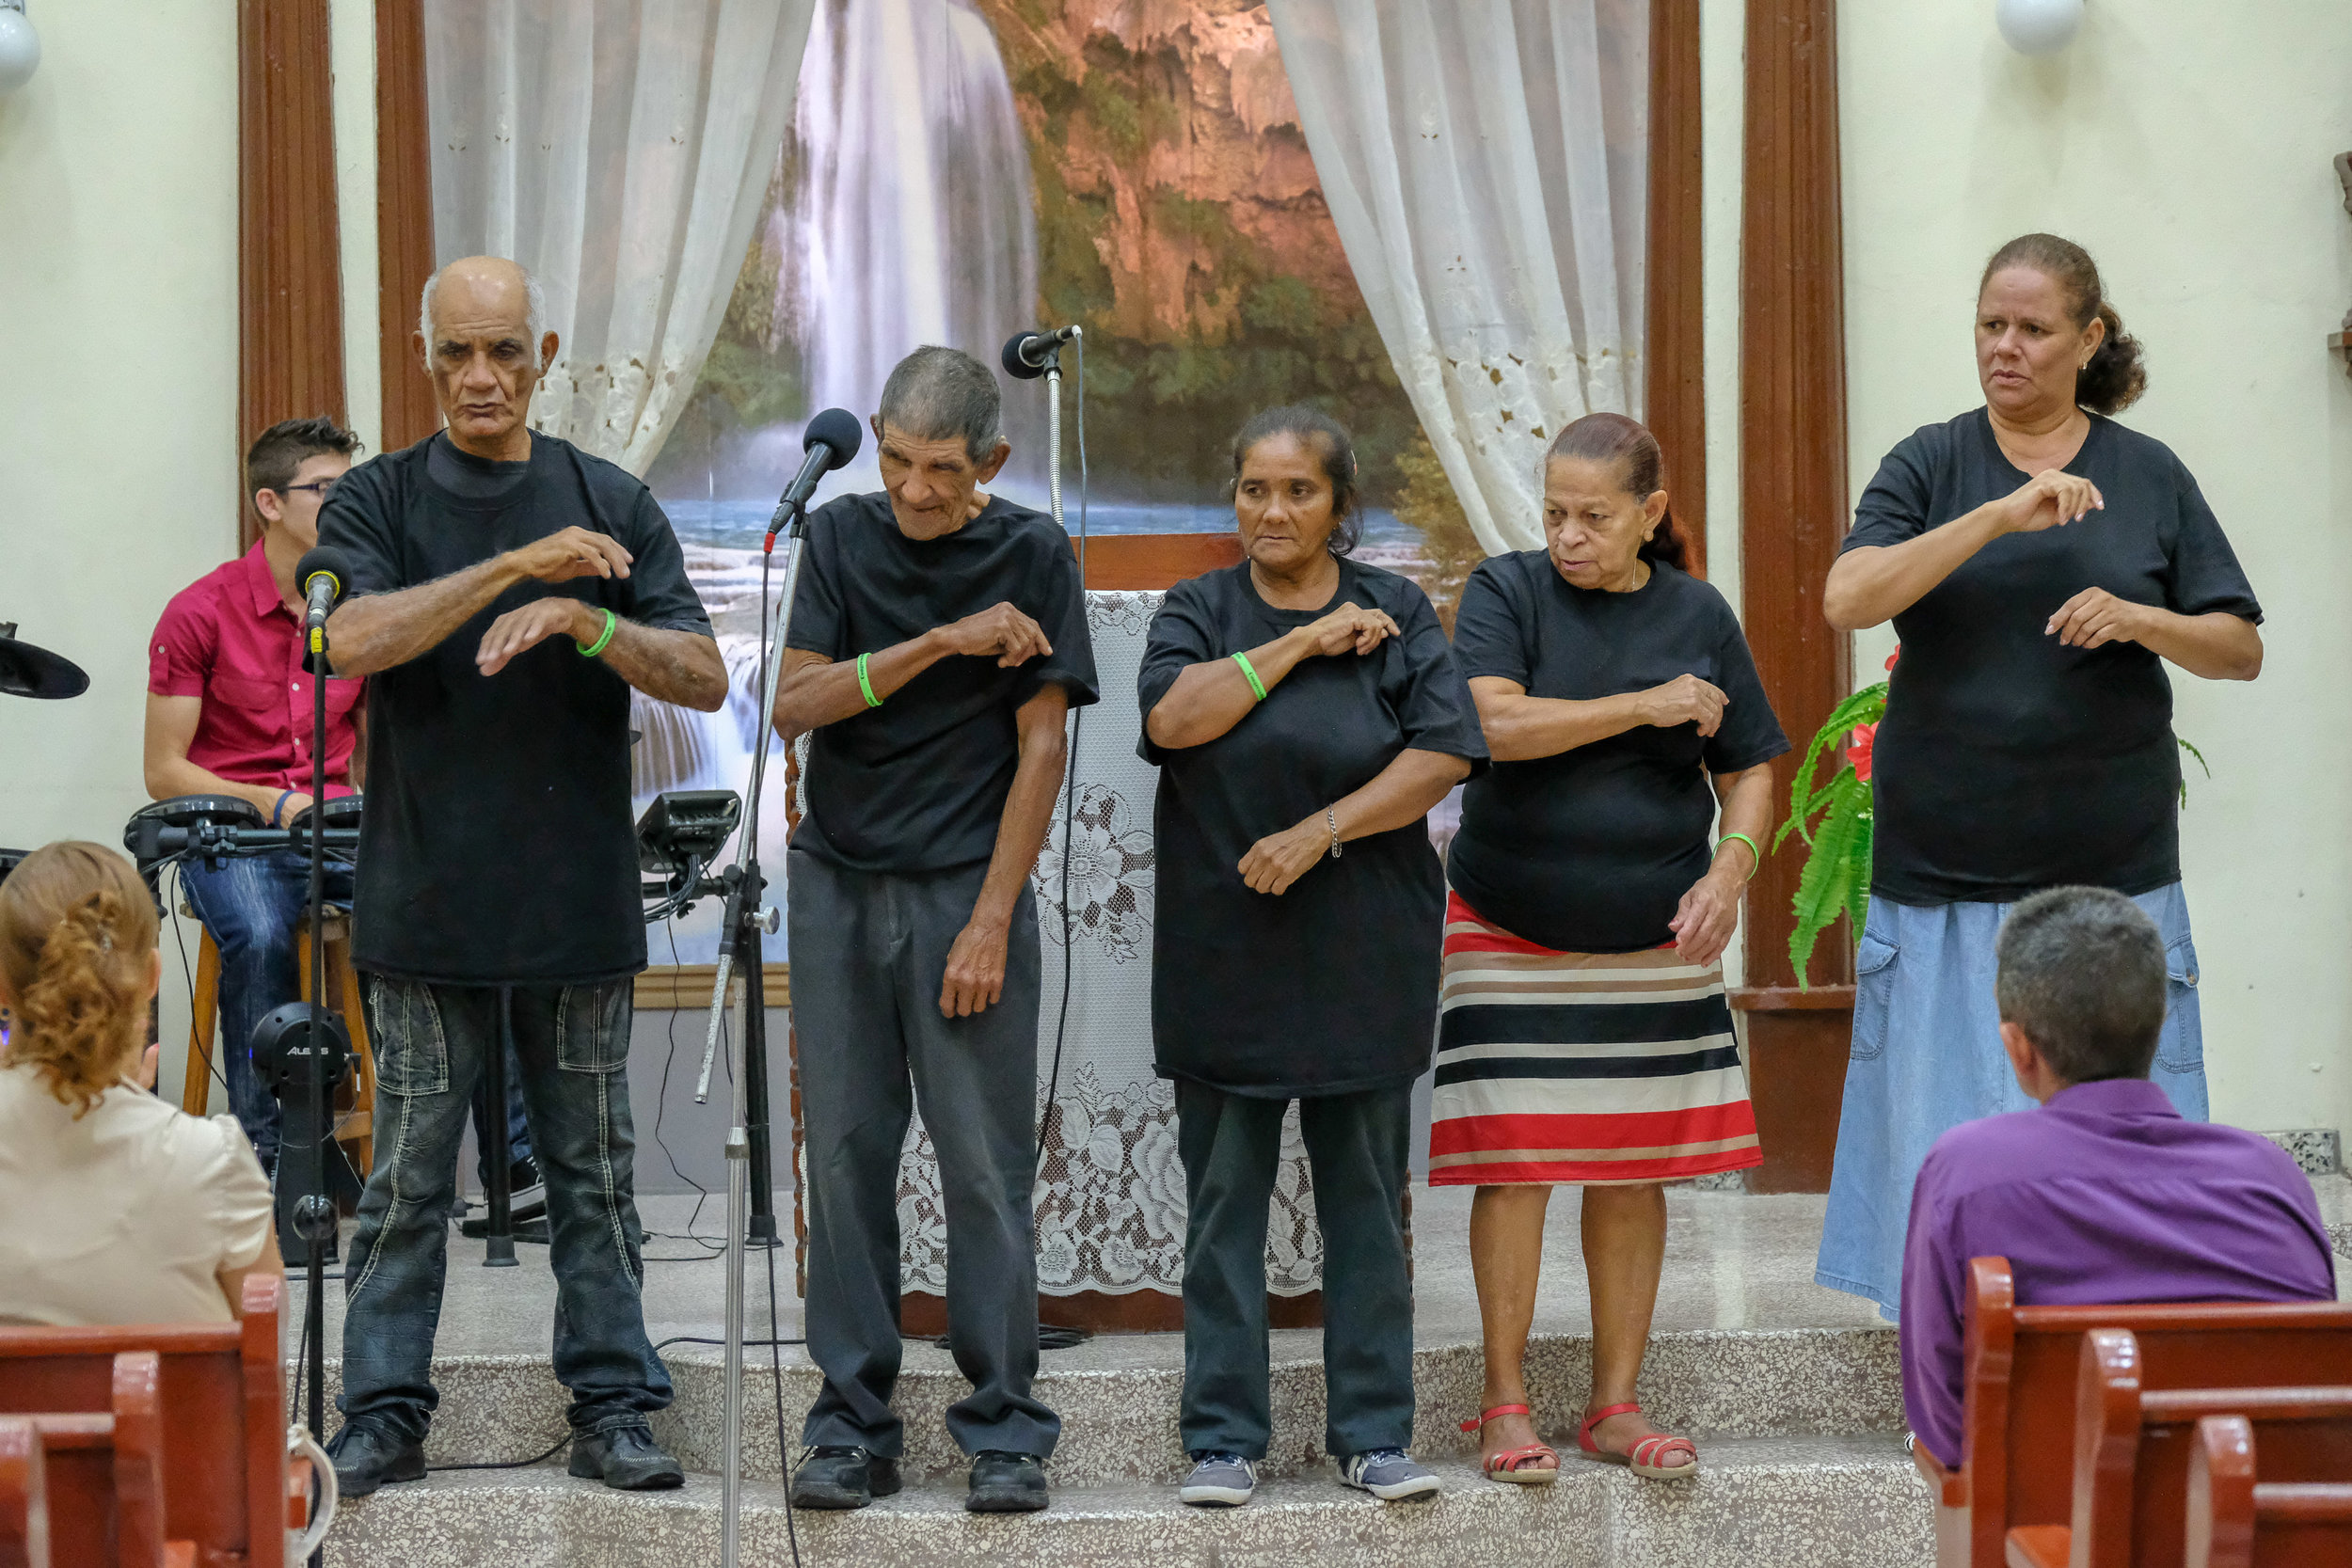 Deaf Adults performing a signed song they learned in a recent deaf ministry event.